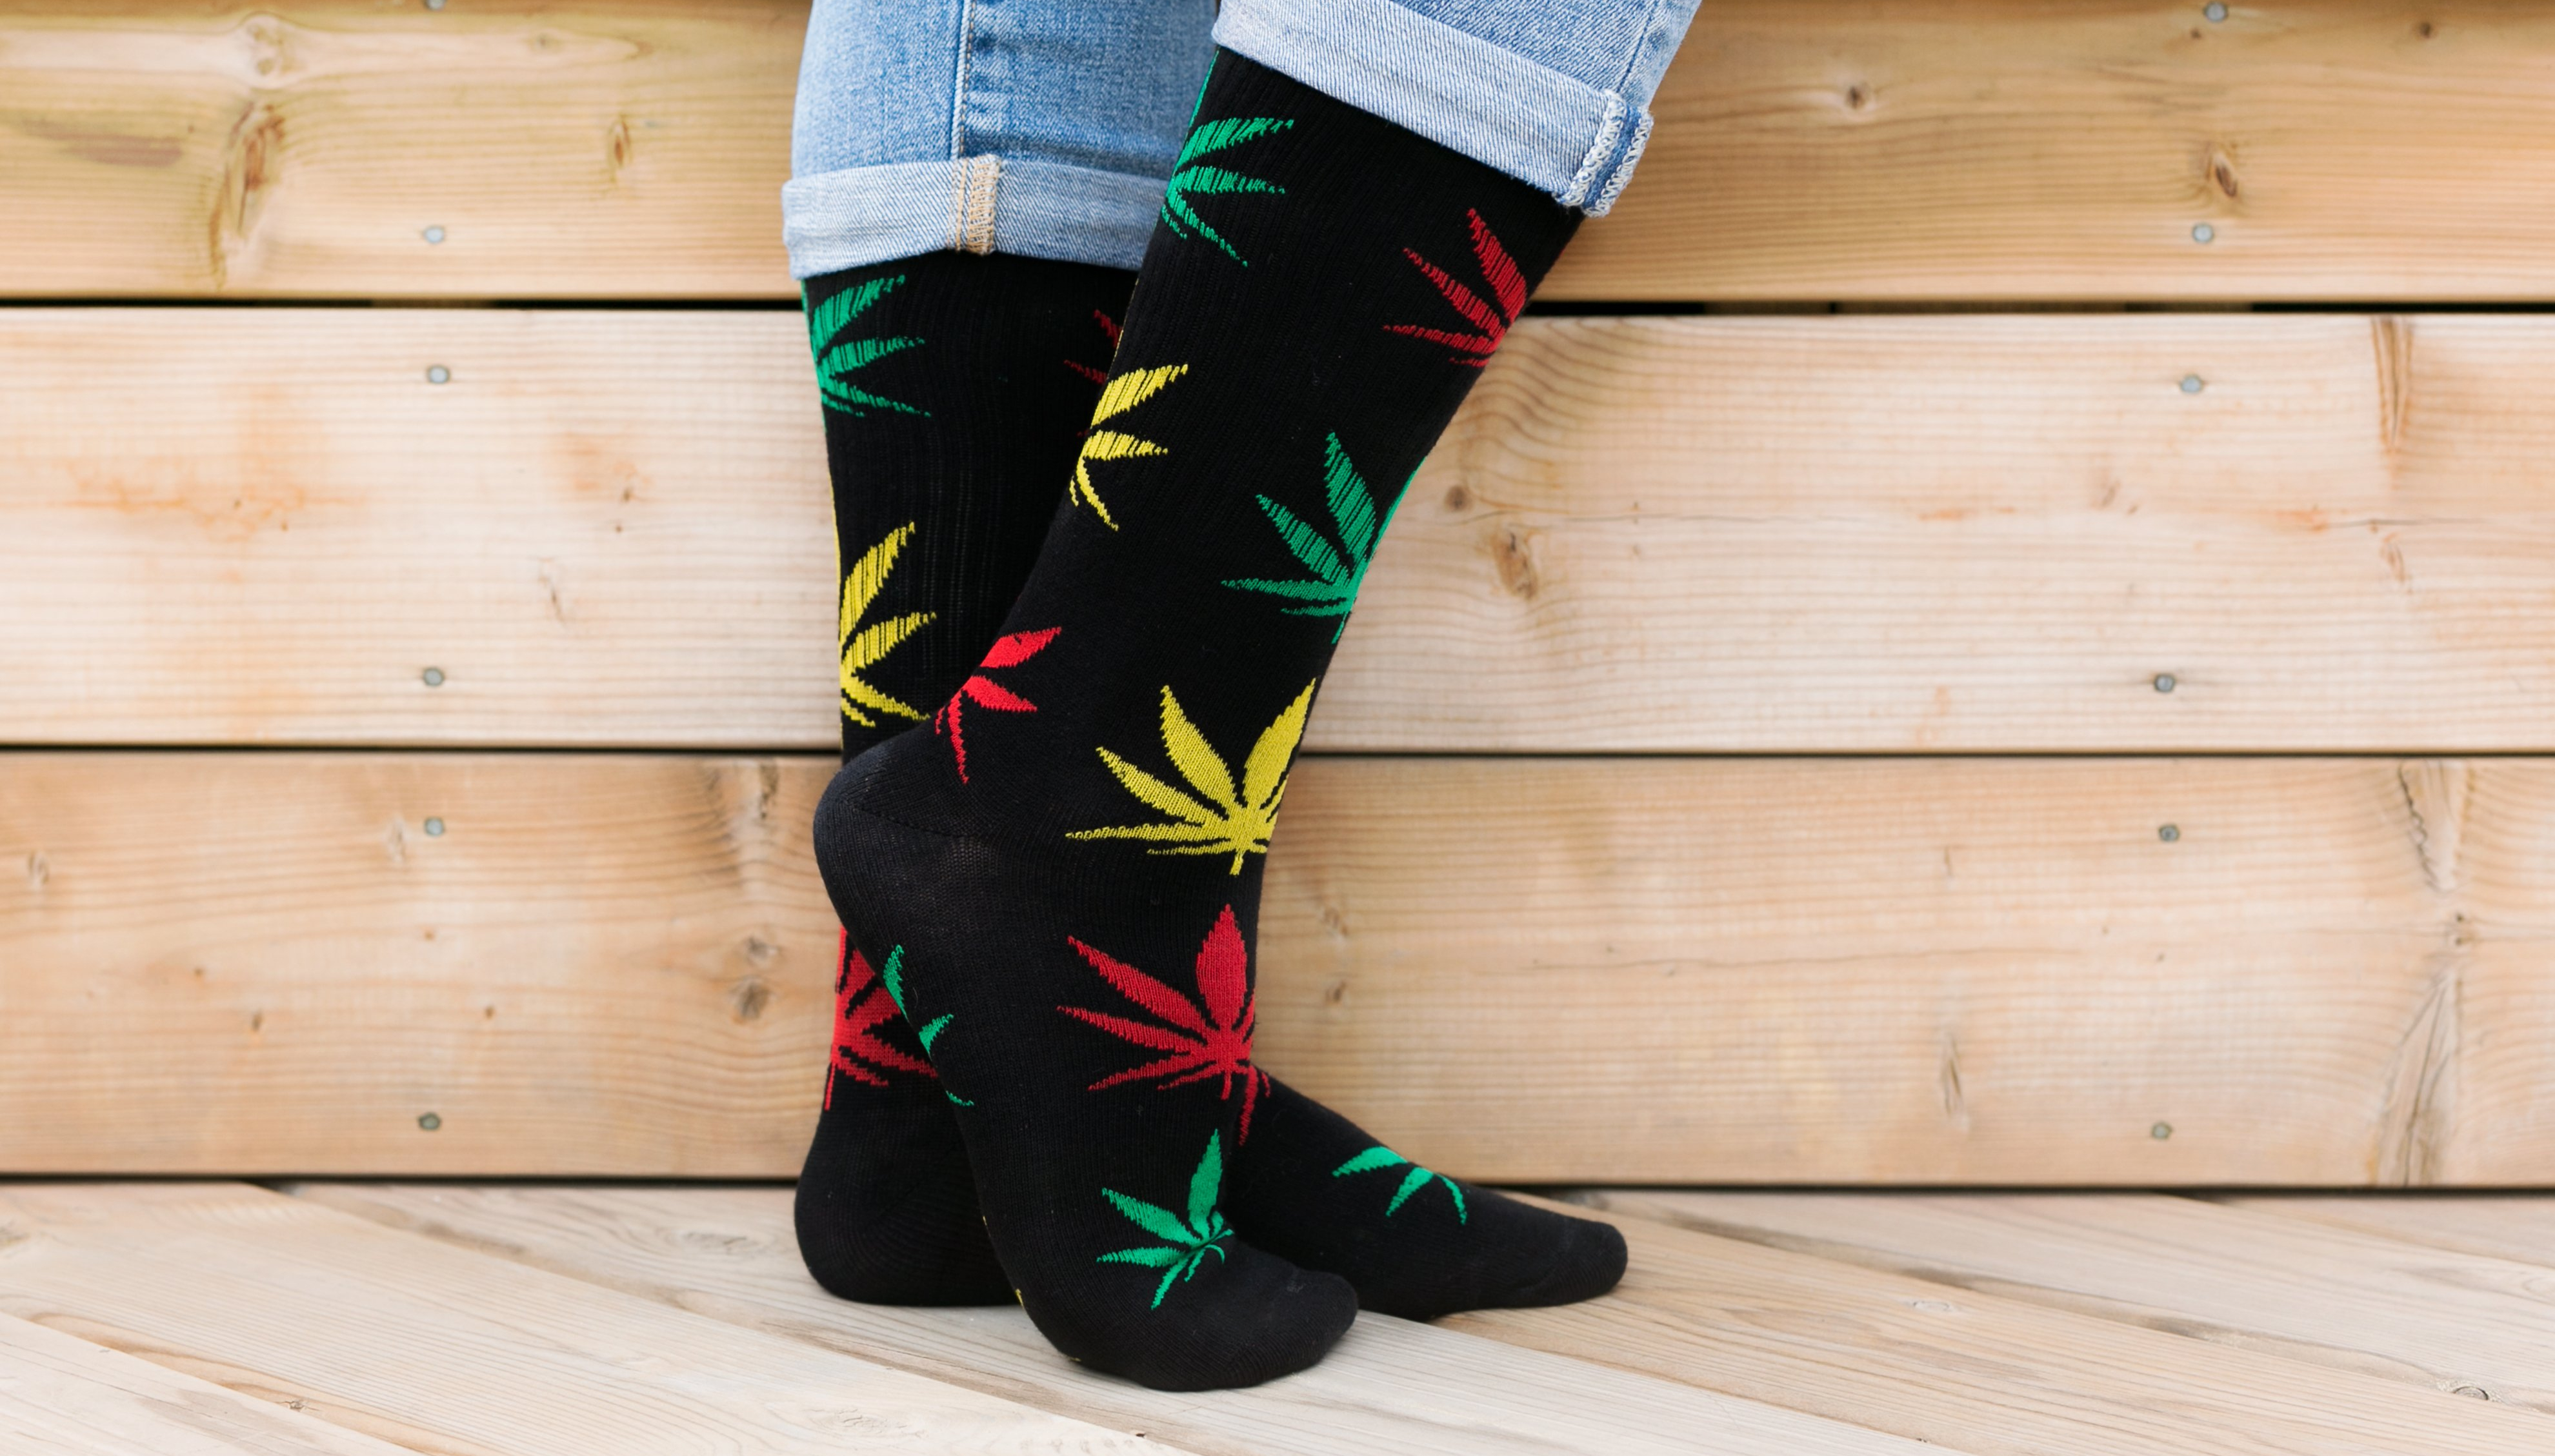 Relationship Court: My Wife Is Smoking Weed